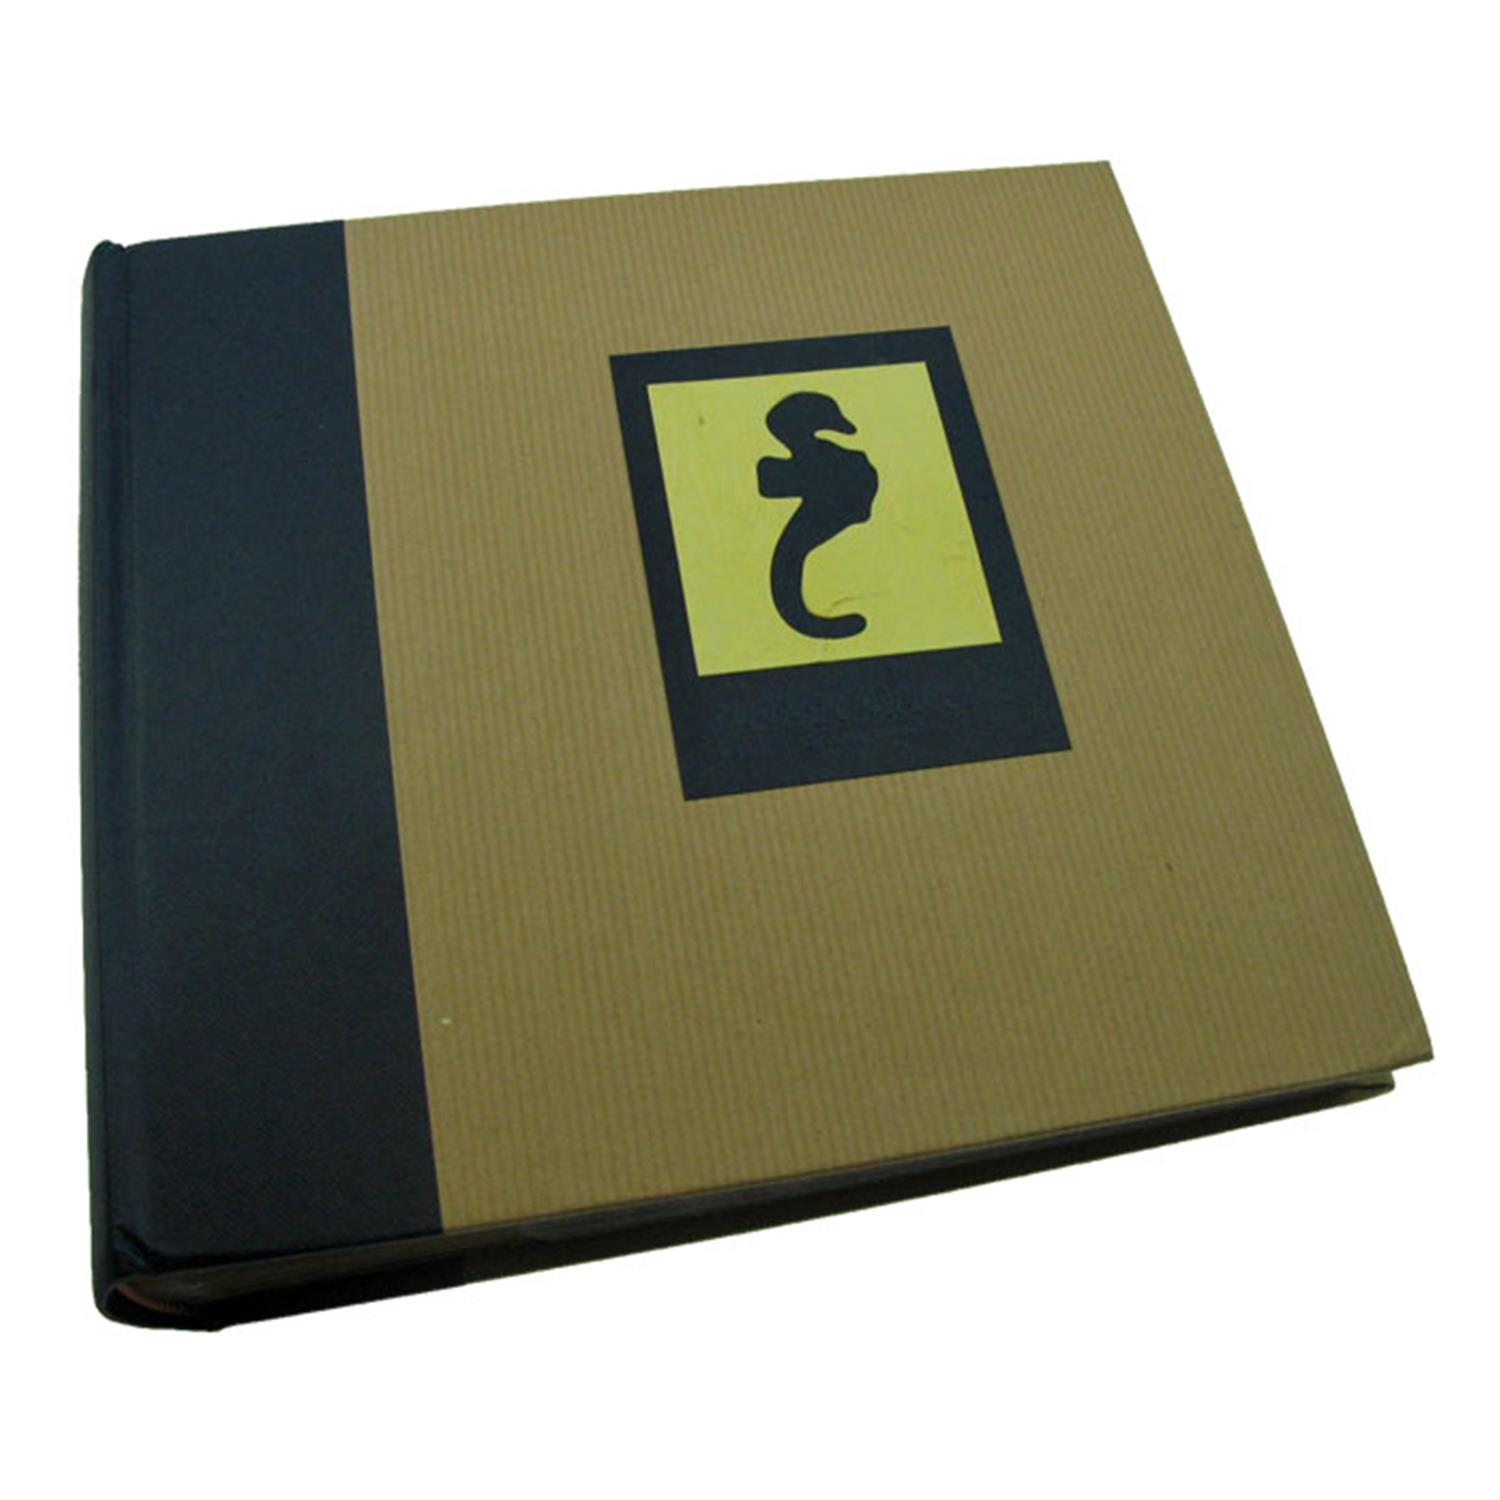 Dorr Green Earth Blue Seahorse 6x4 Slip In Photo Album - 200 Photos